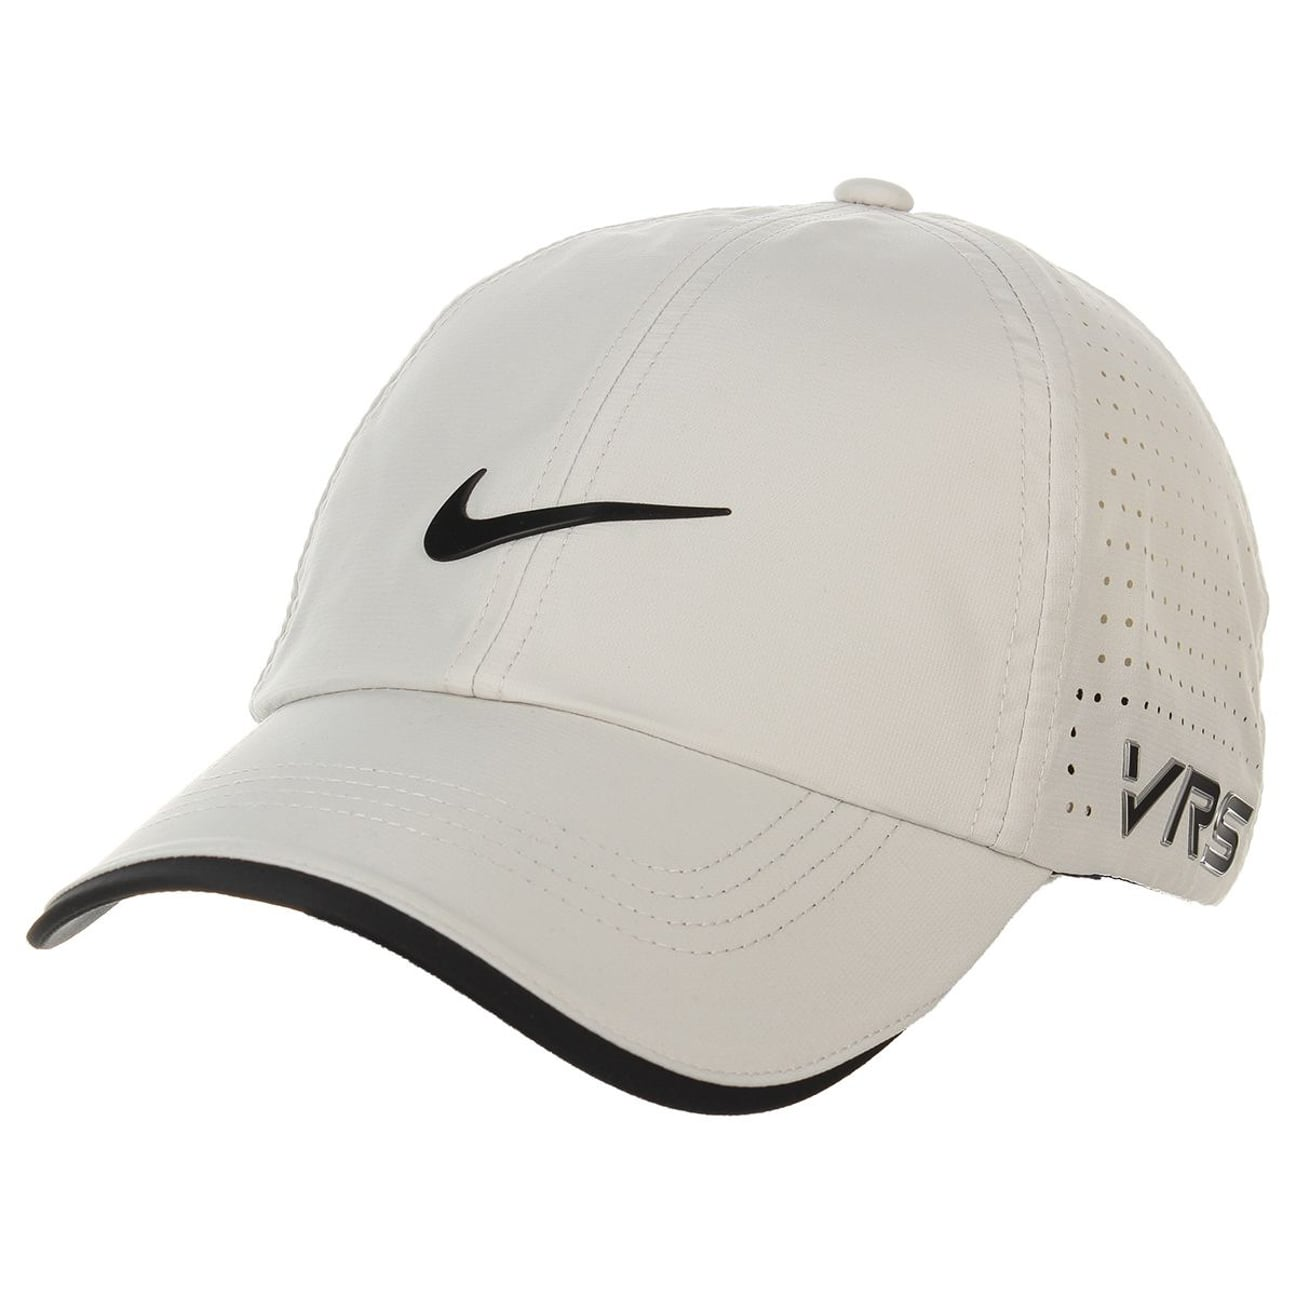 26a2f089e01 ... New Tour Perforated Golf Cap by Nike - beige 1 ...